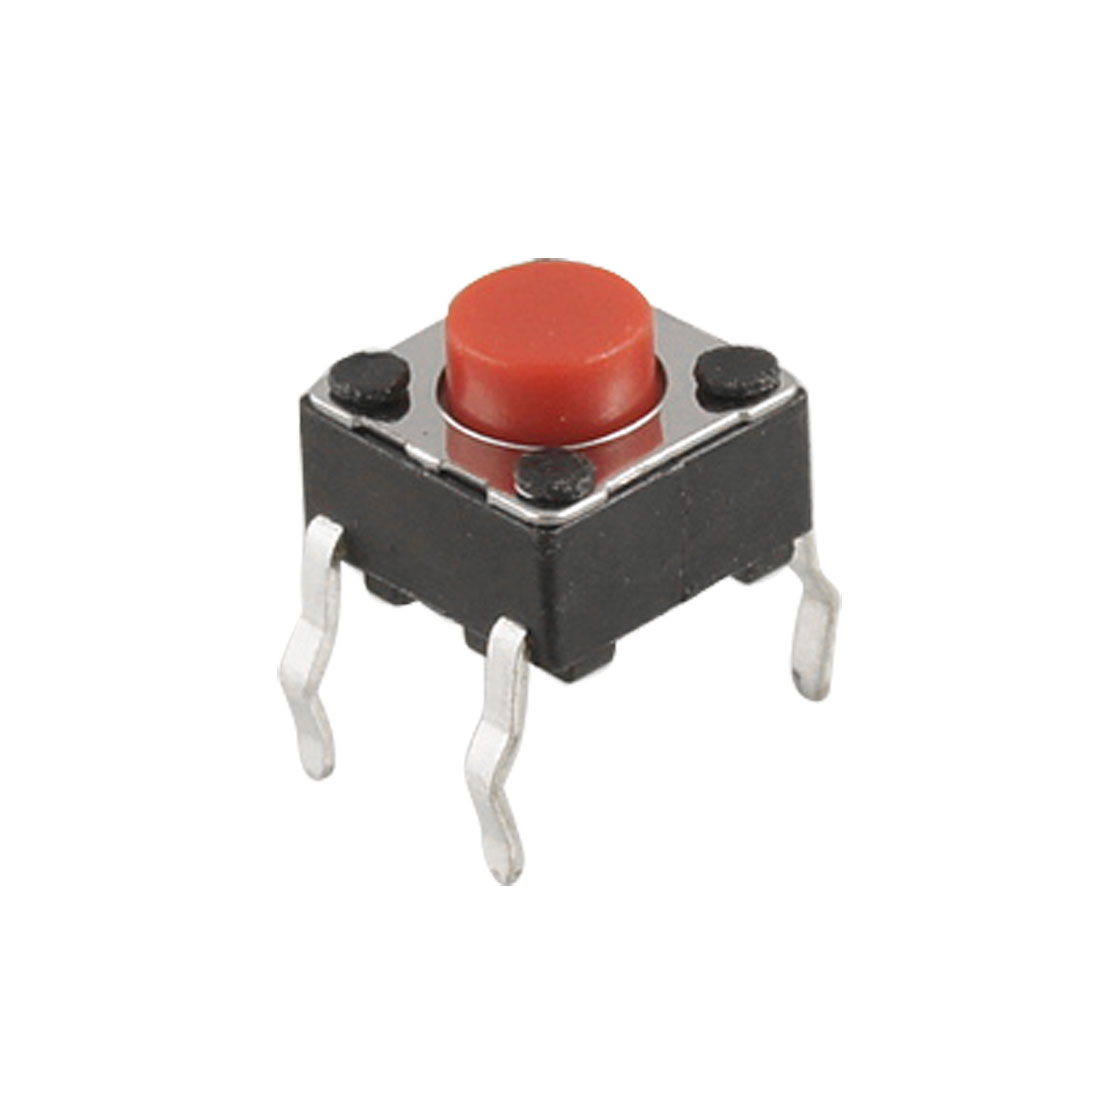 10 Pcs 4 Pins Tactile Push Button Switch Momentary Tact 6 x 6 x 5mm